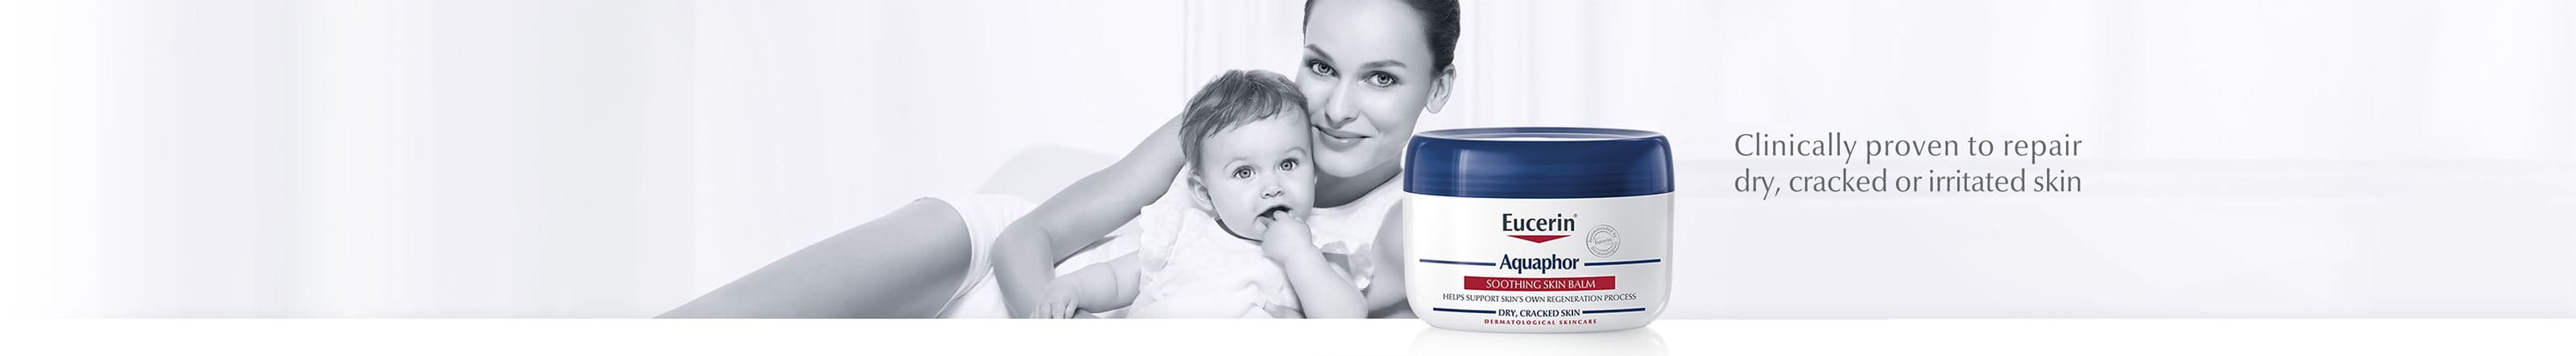 Aquaphor soothing skin balm for dry, cracked or irritated skin